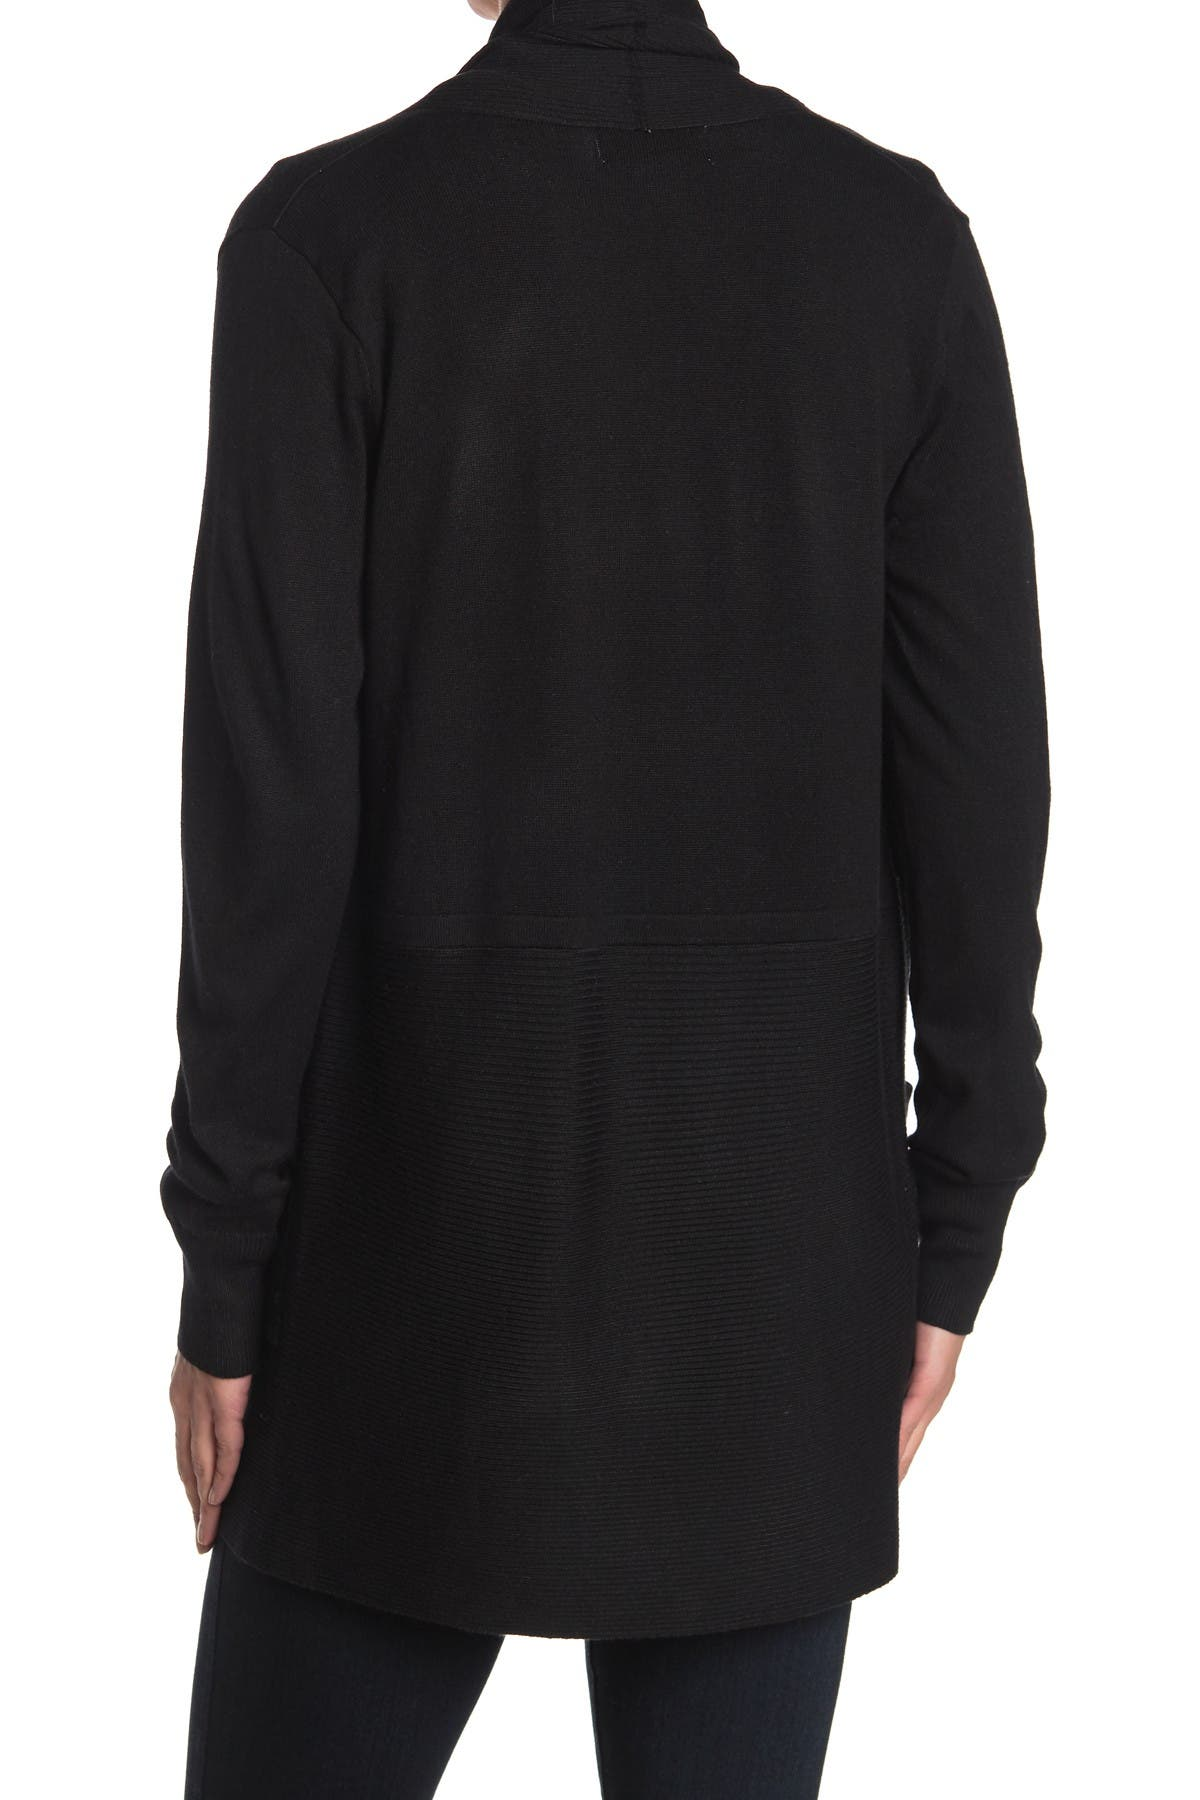 Image of Magaschoni Long Sleeve Open Front Cardigan